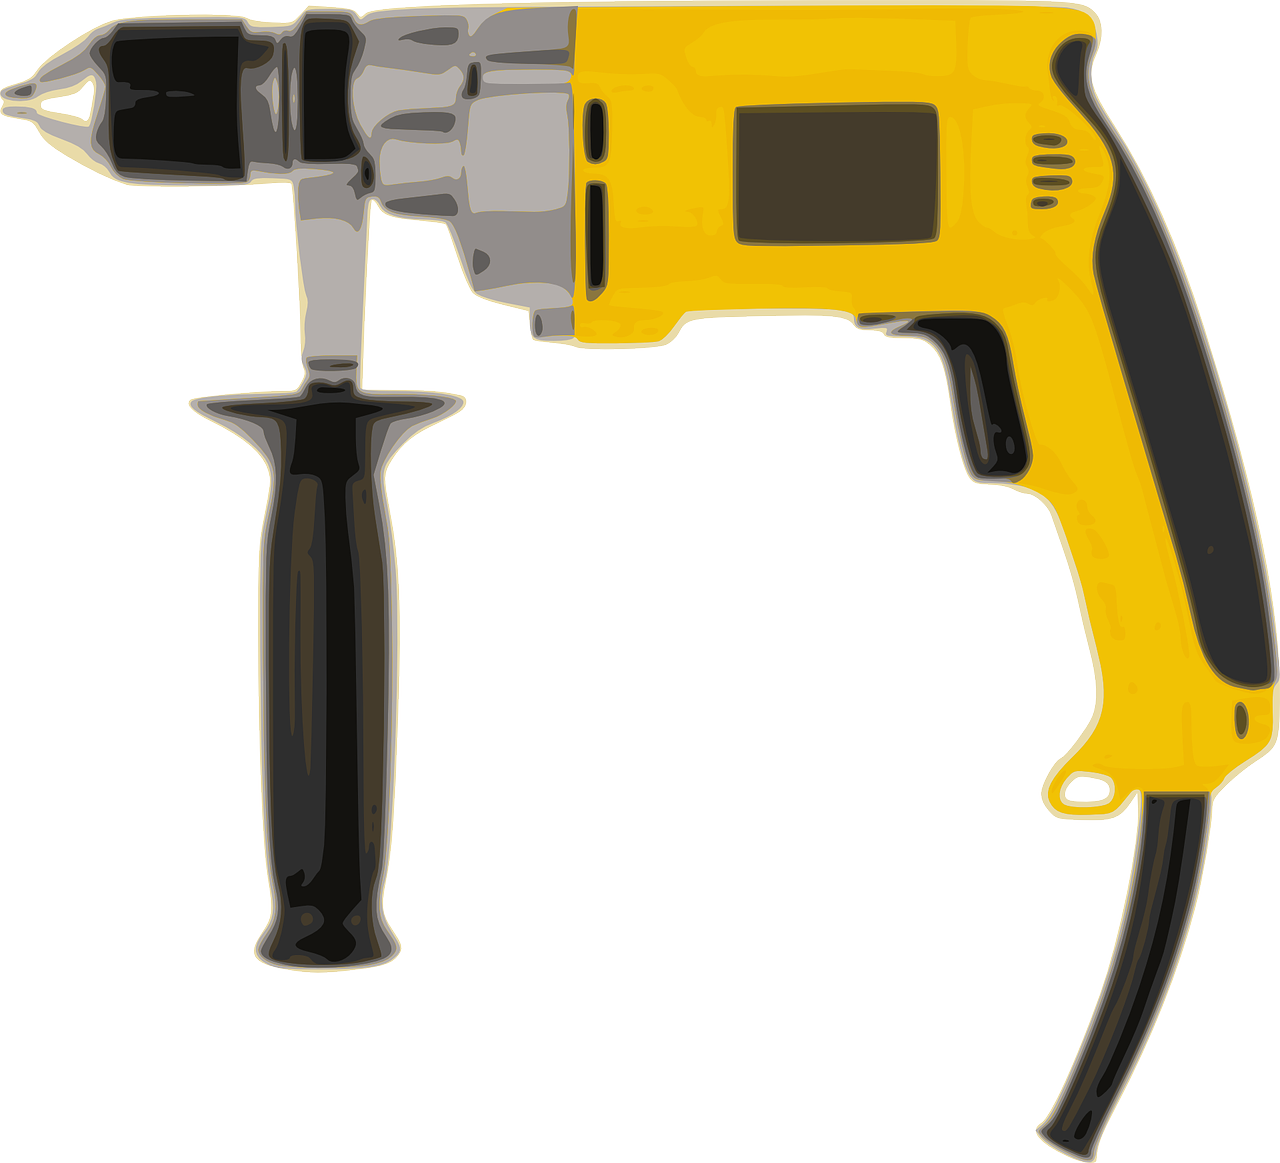 Drill clipart boring machine. Power png image picpng